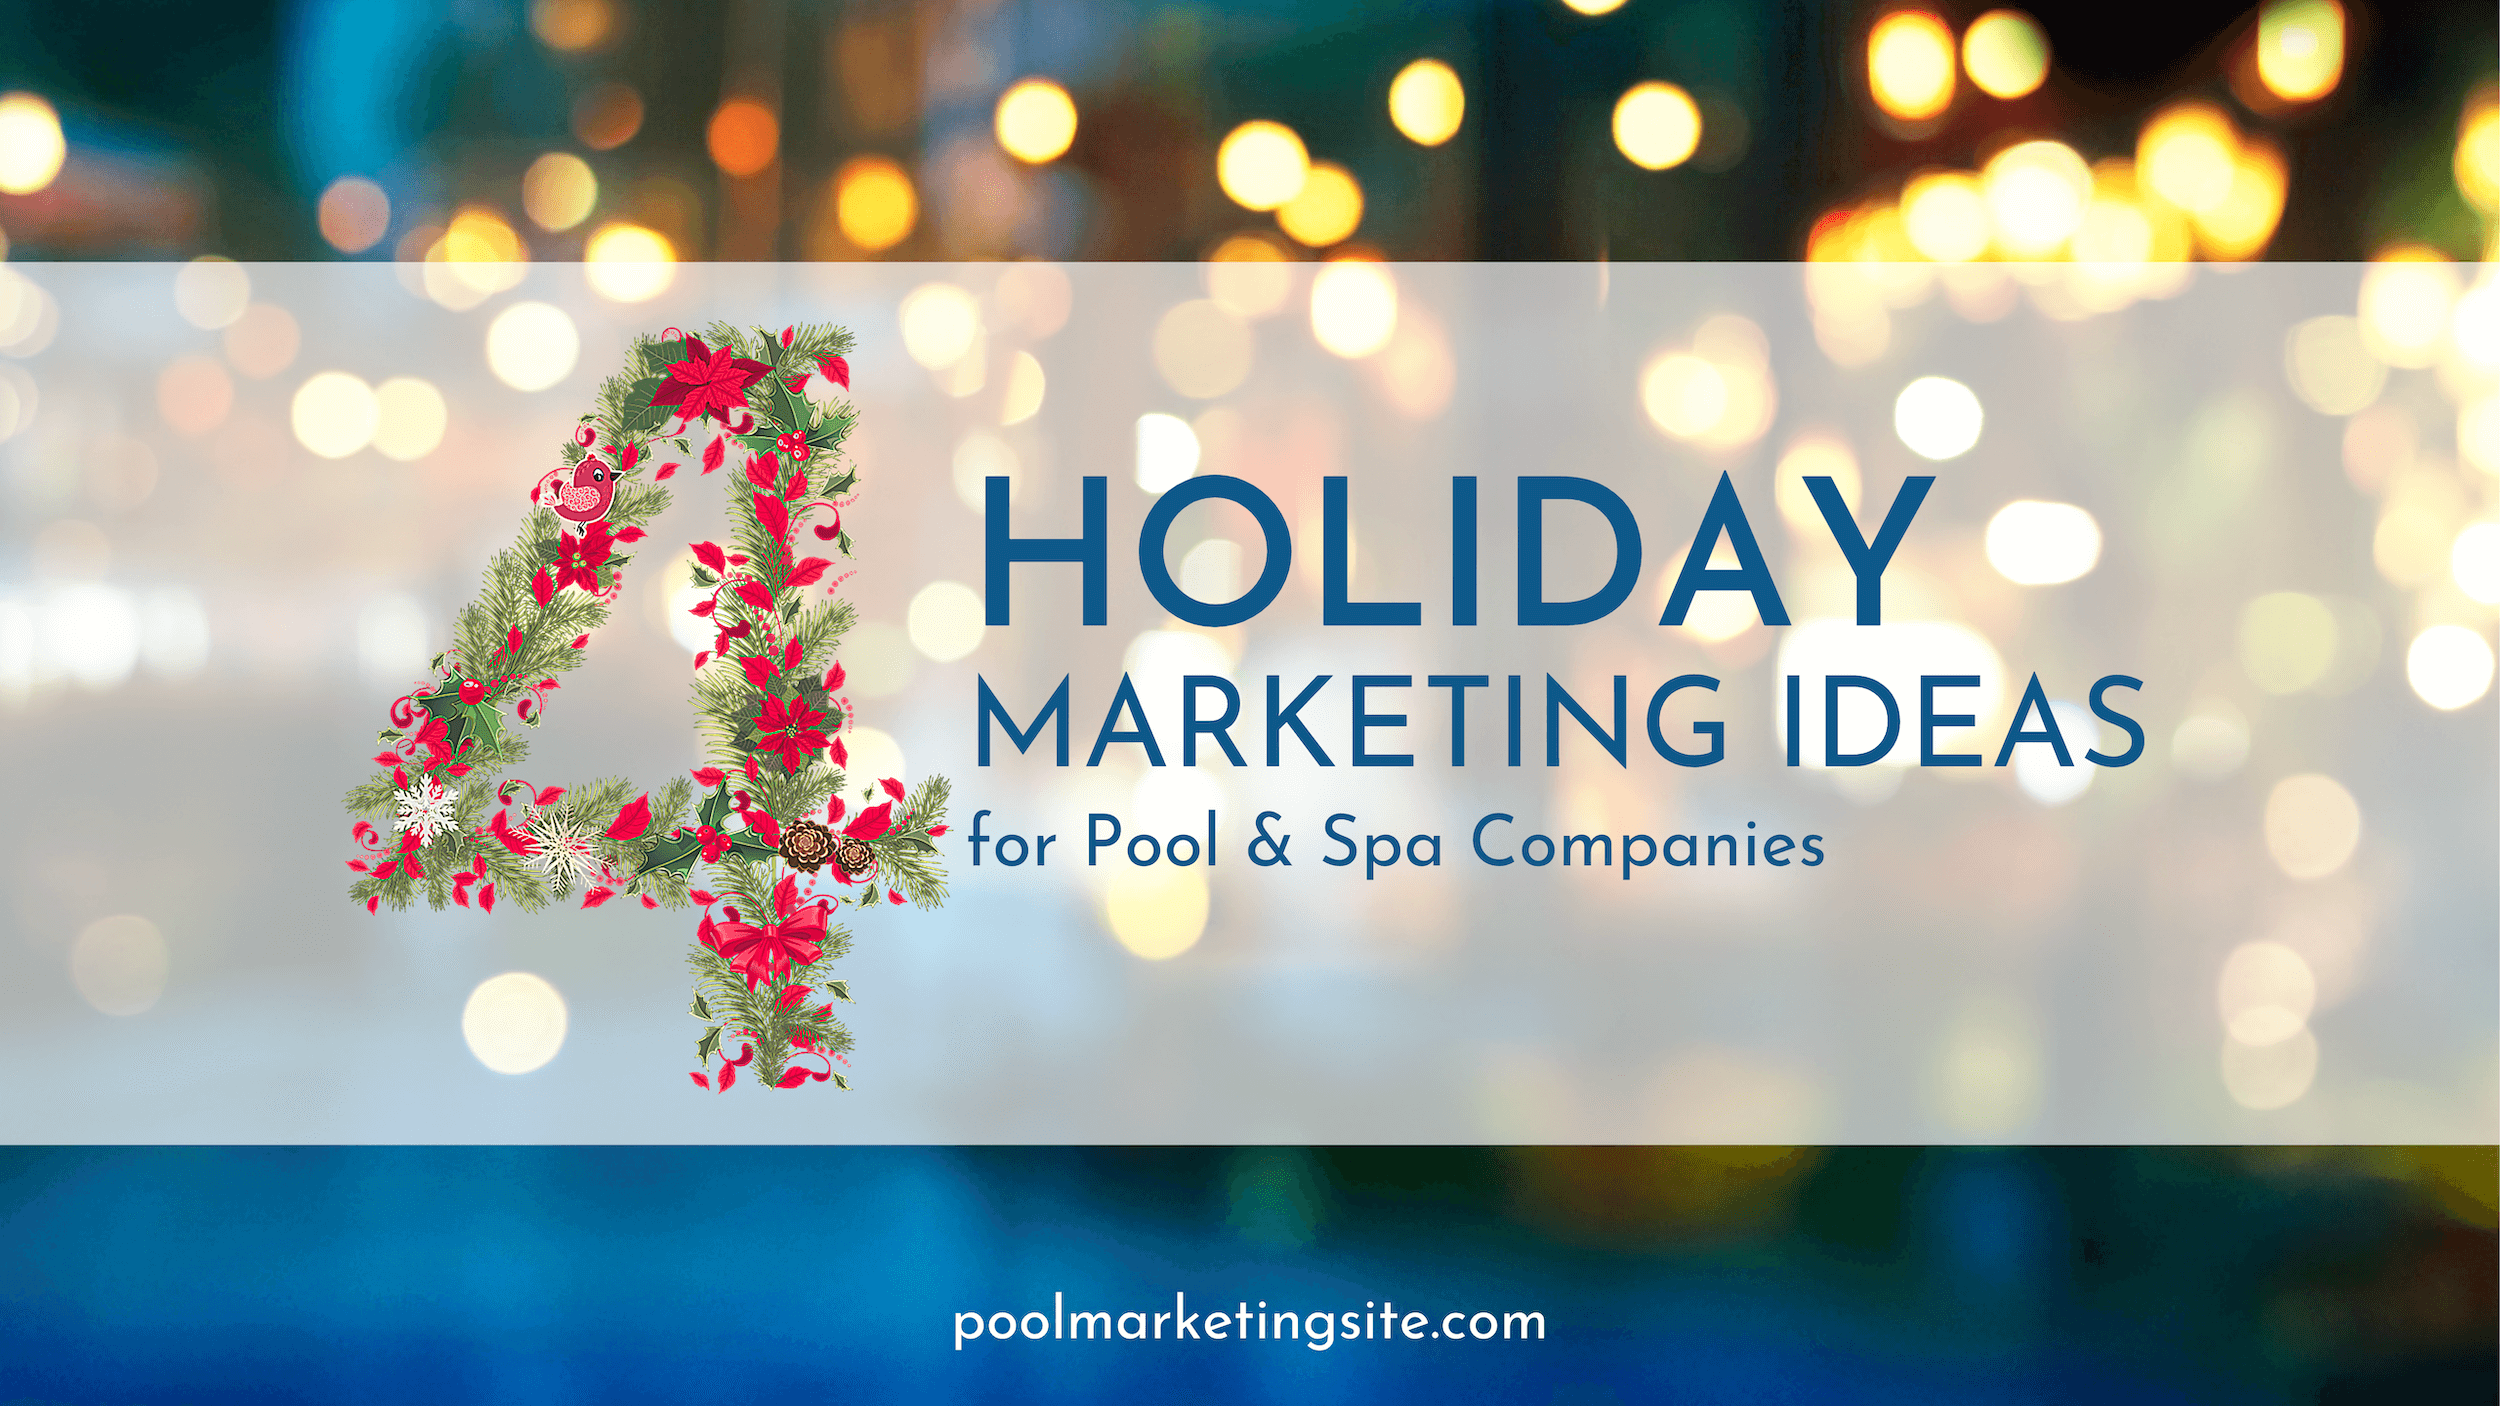 4 Holiday Marketing Ideas for Pool & Spa Companies